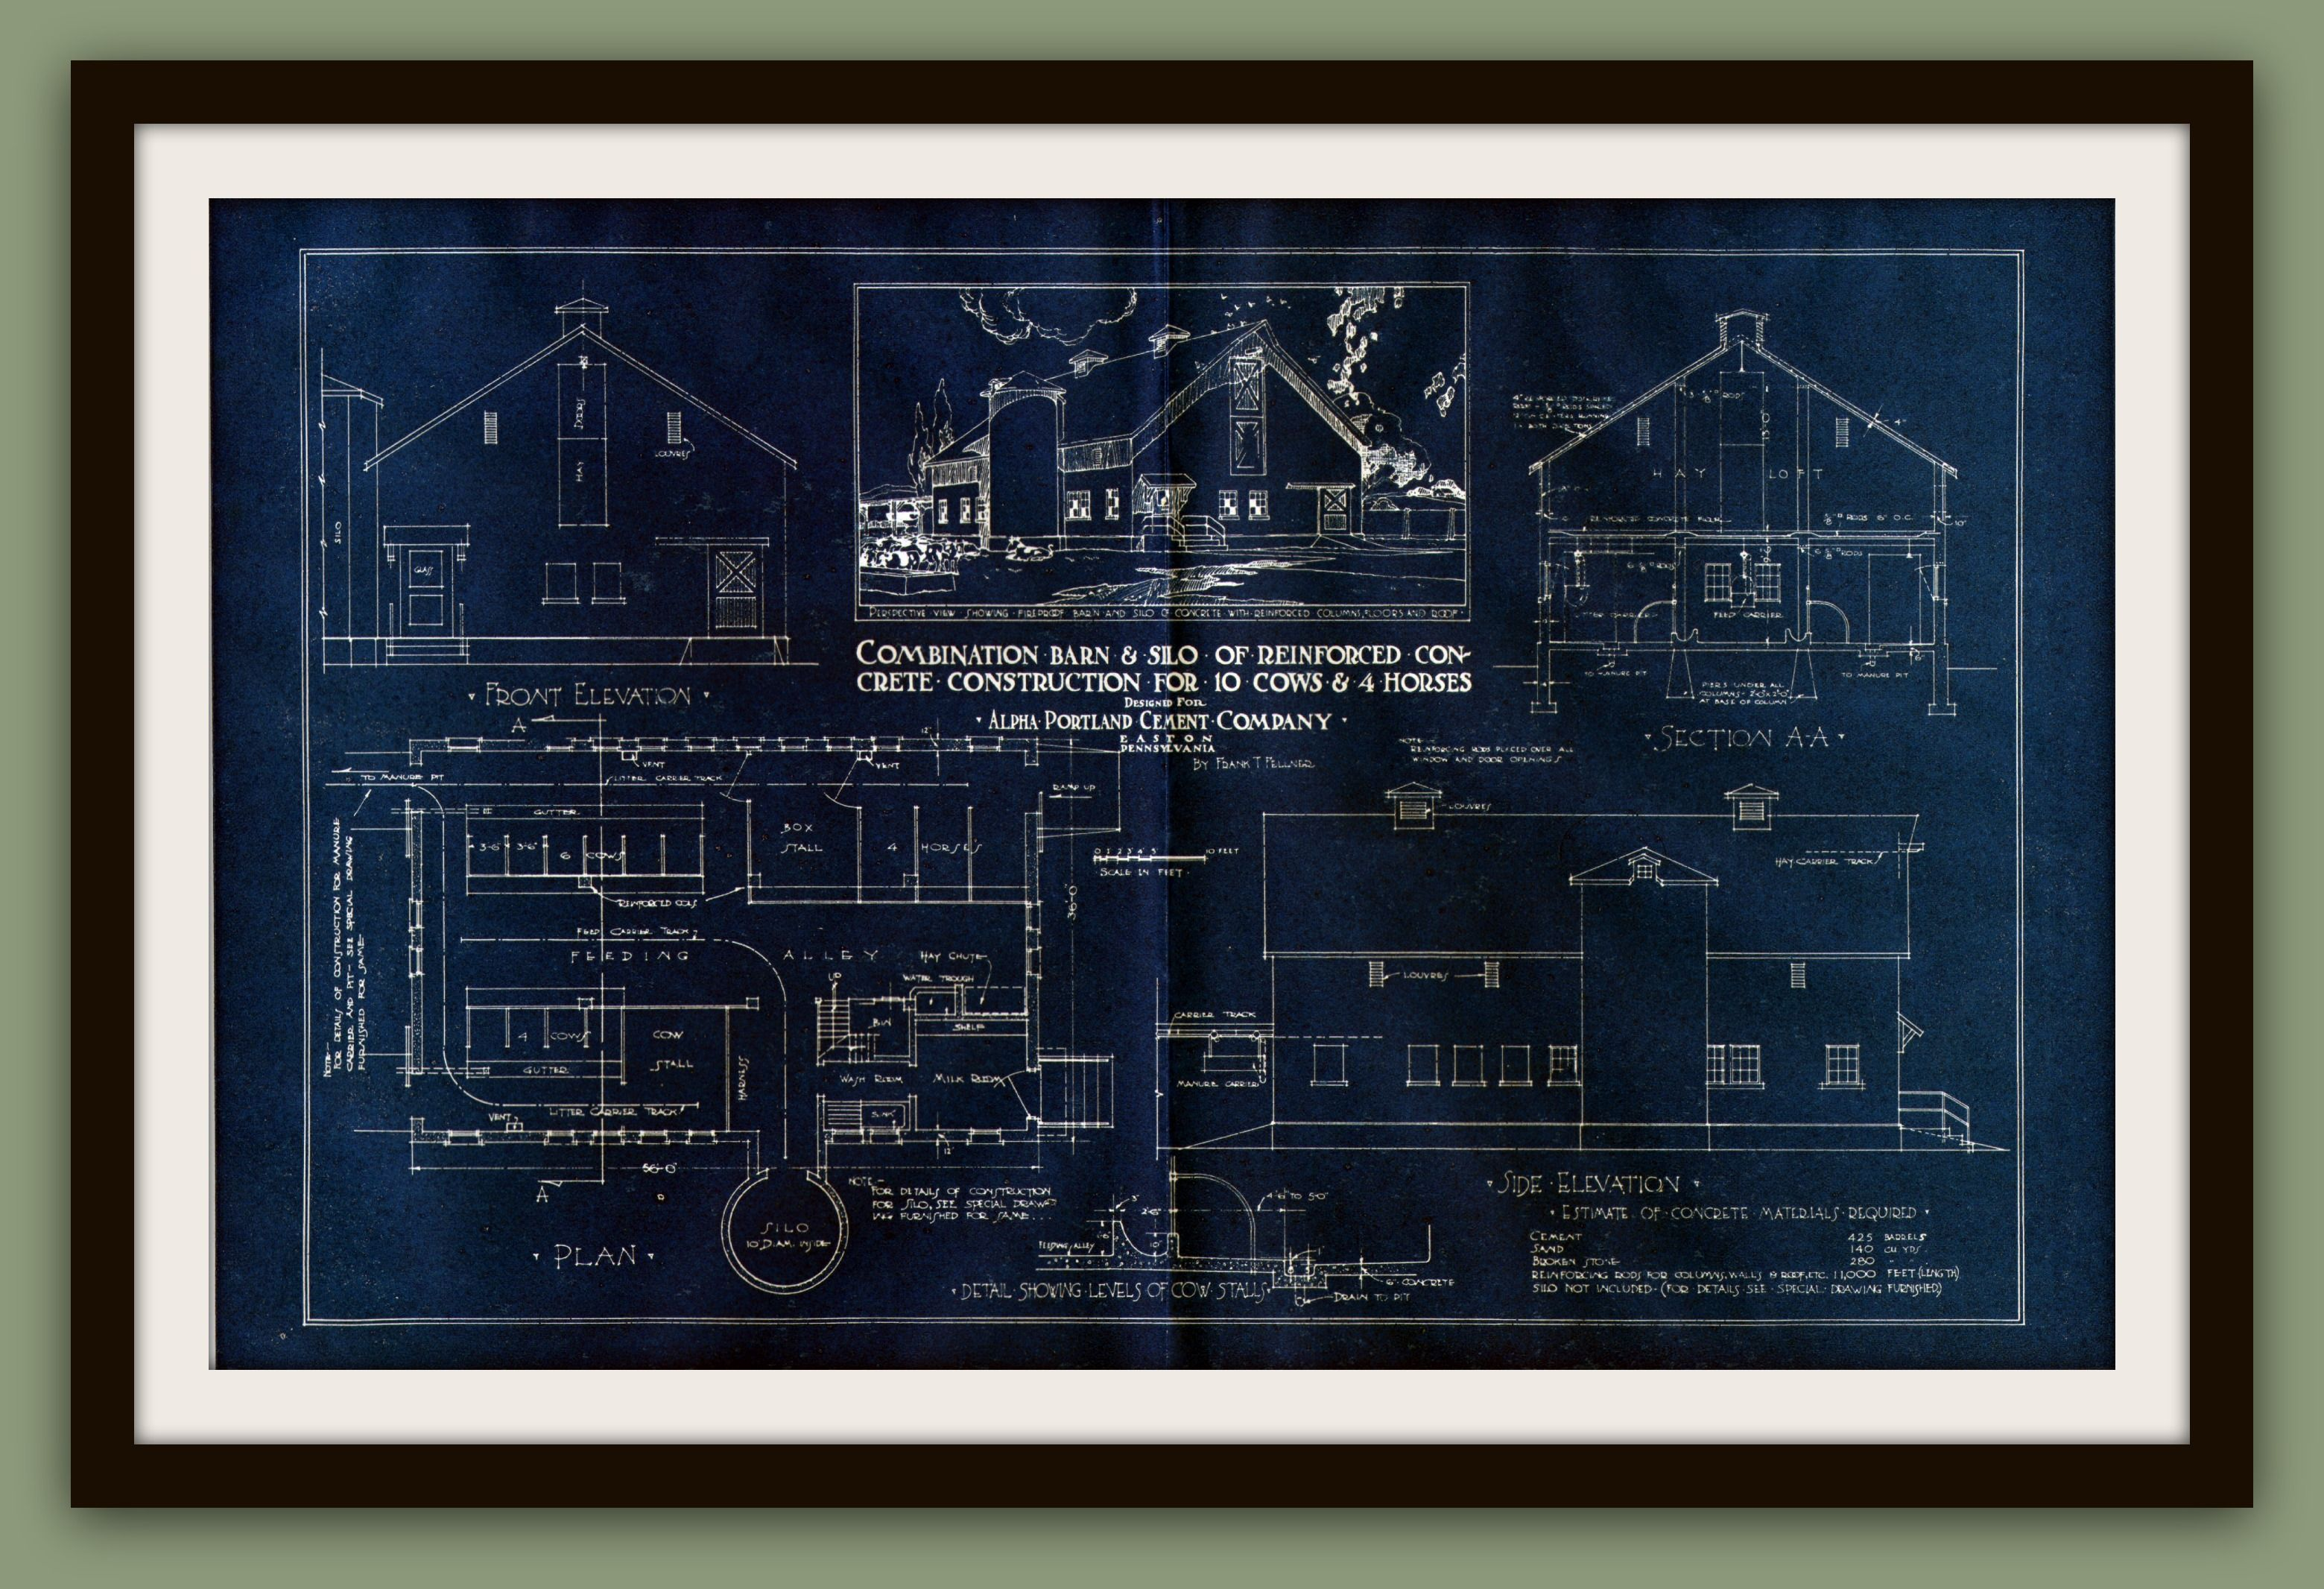 Vintage farmhouse silo blueprint blueprint art pinterest combination barn and silo vintage blueprint malvernweather